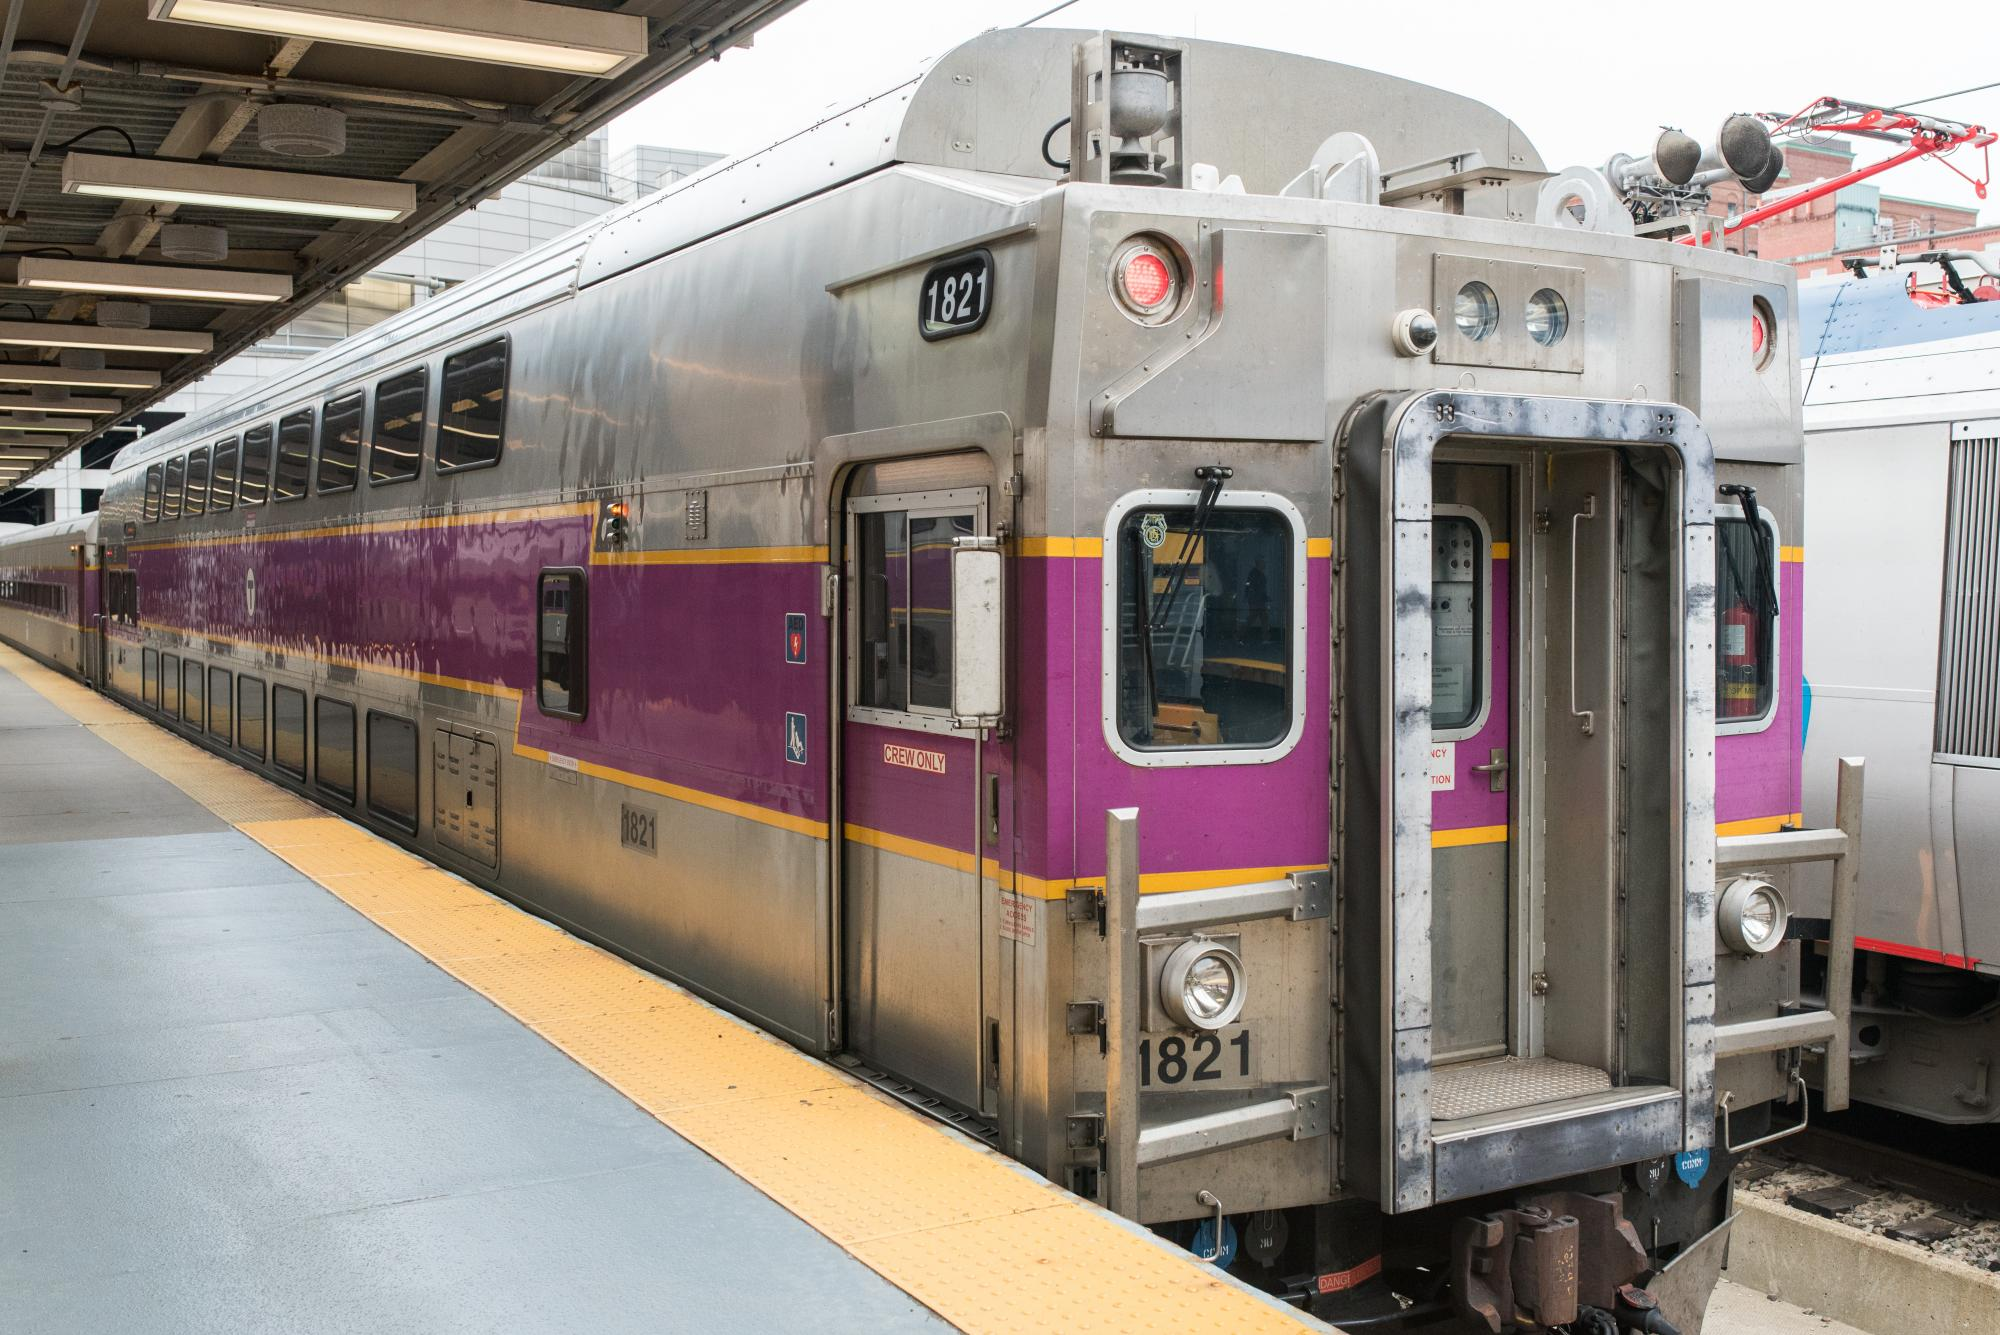 Commuter rail train at a station platform.